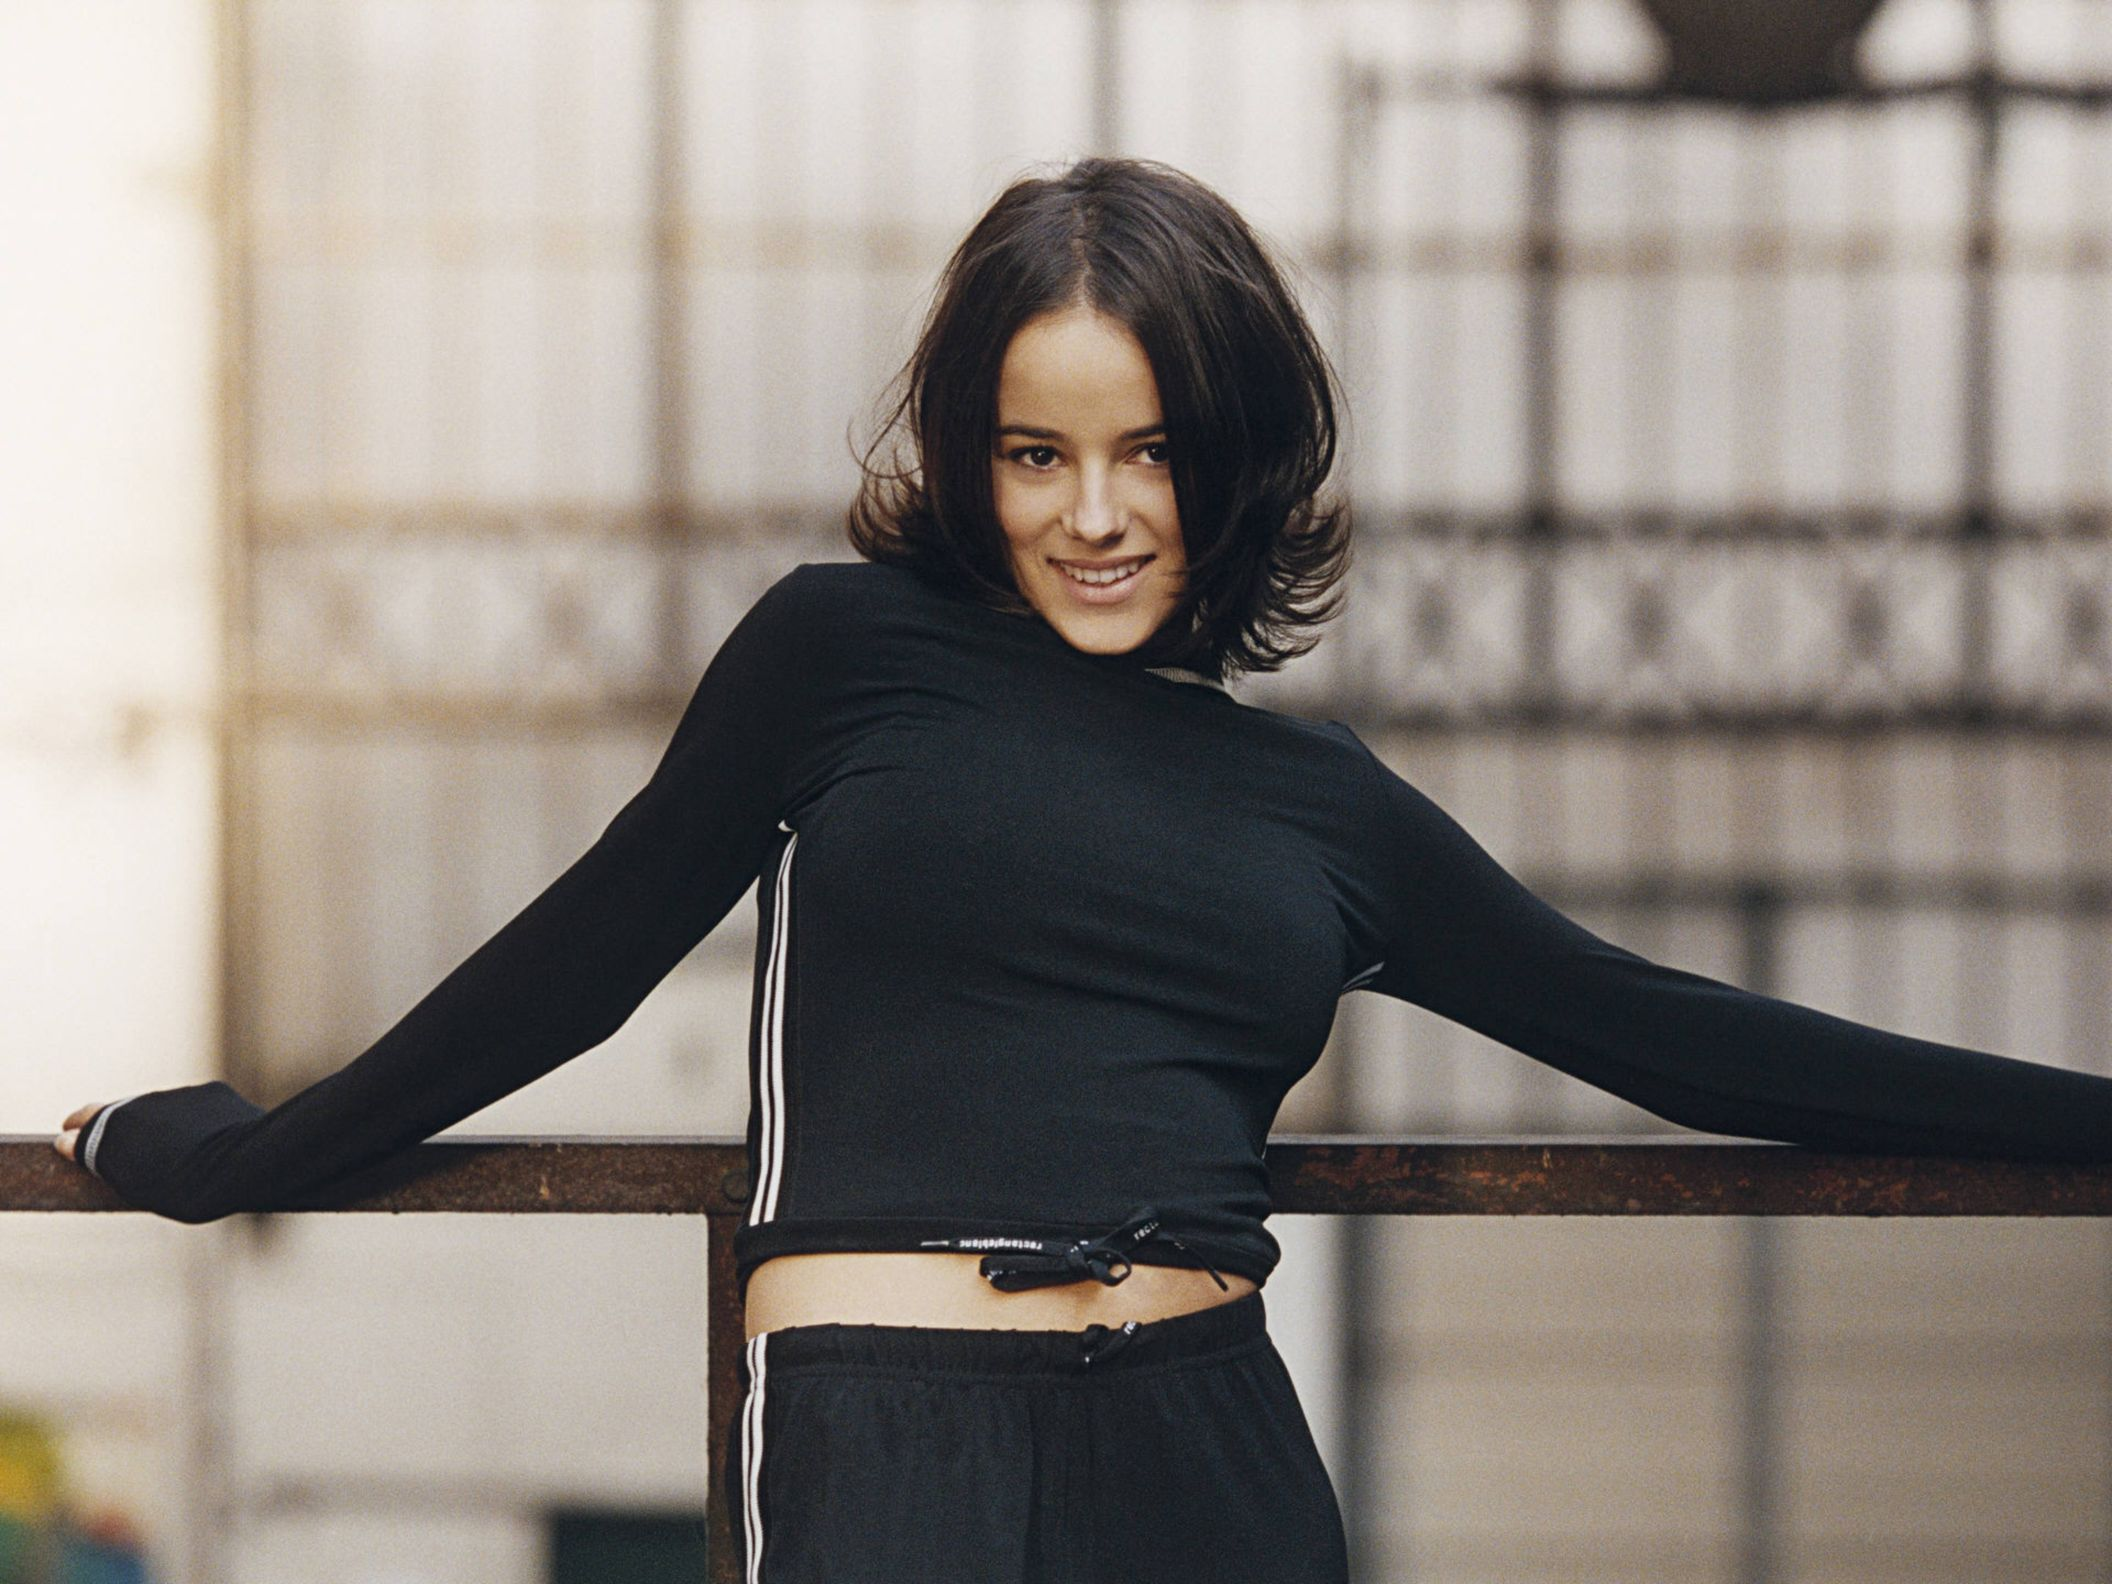 Download free HD Alizee 3 Normal Wallpaper, image